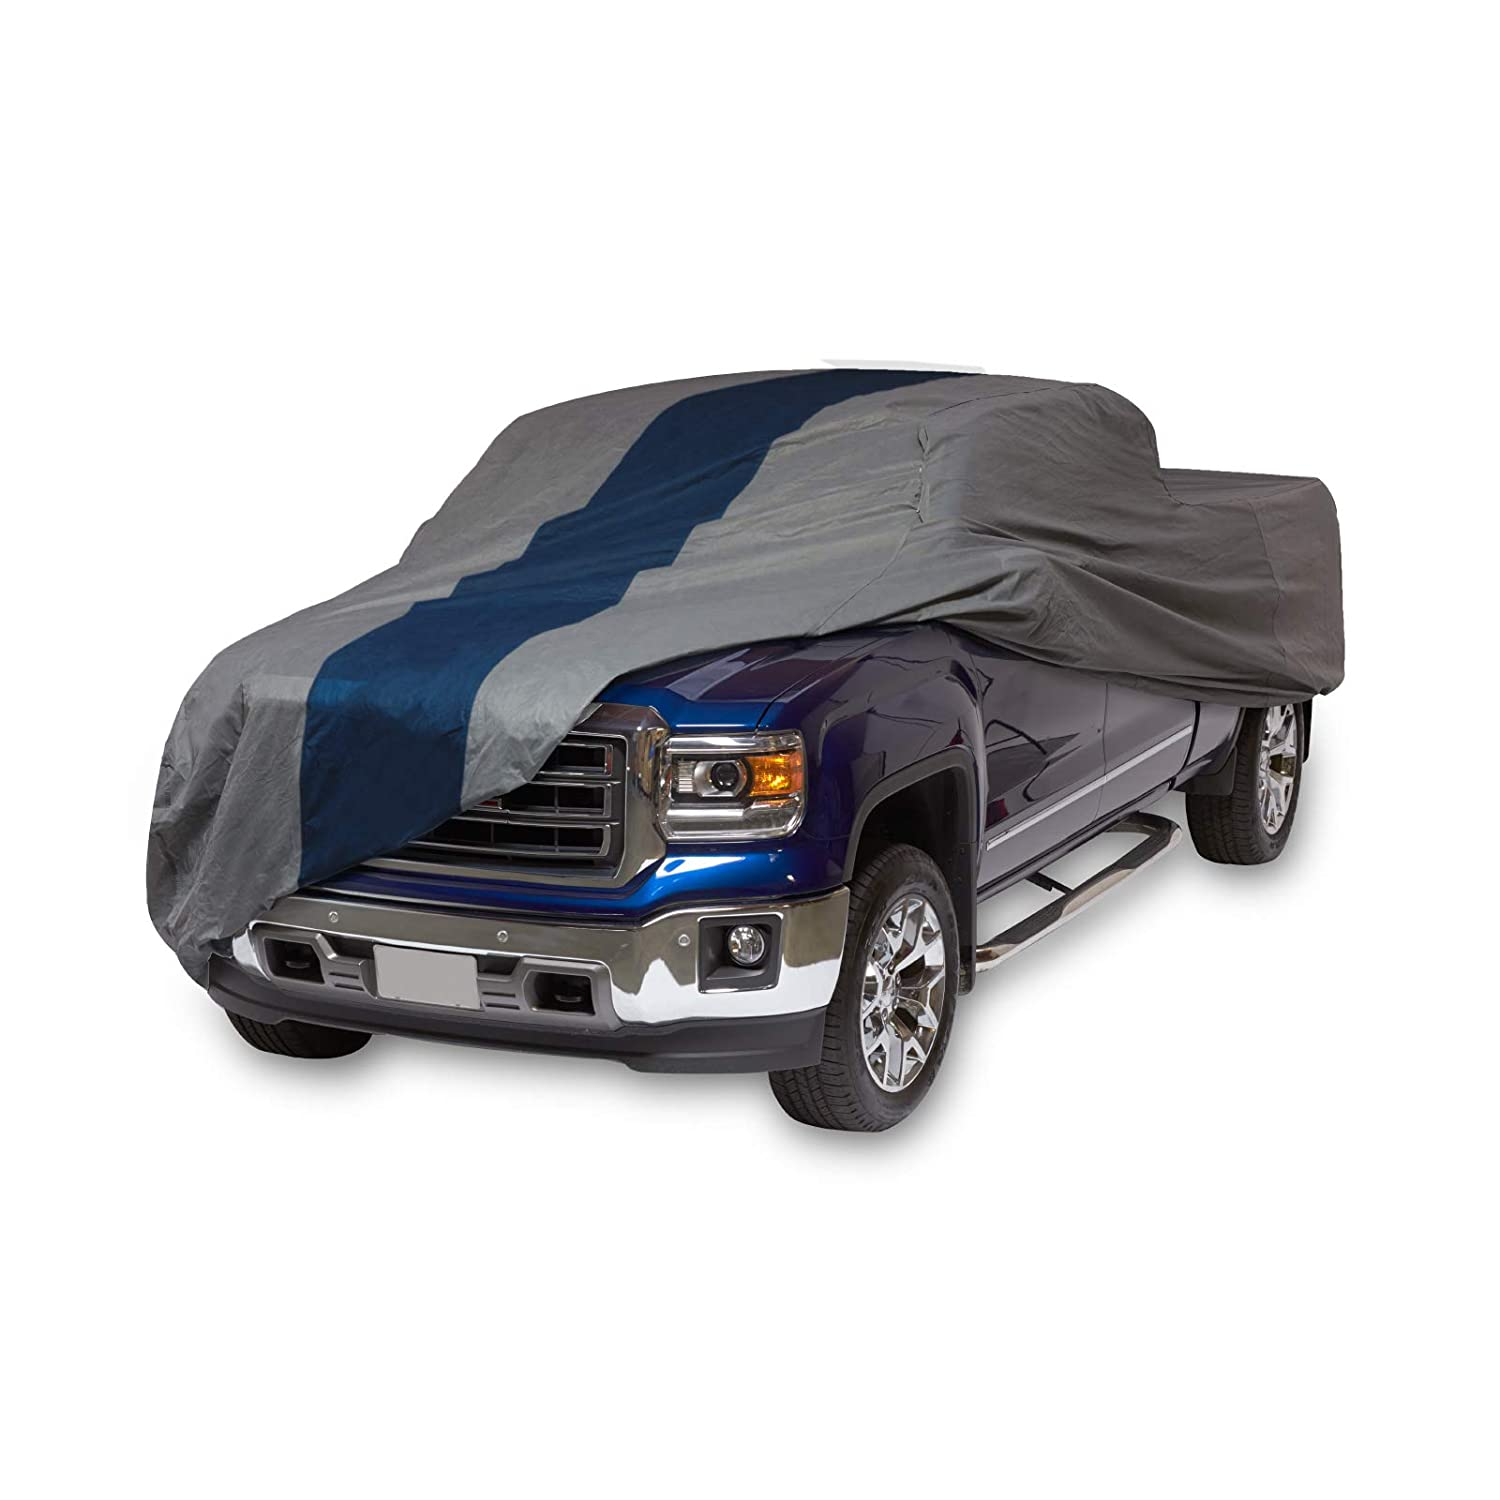 Duck Covers A2T241 Double Defender Pickup Truck Cover for Standard Bed LWB Trucks up to 20' 1'